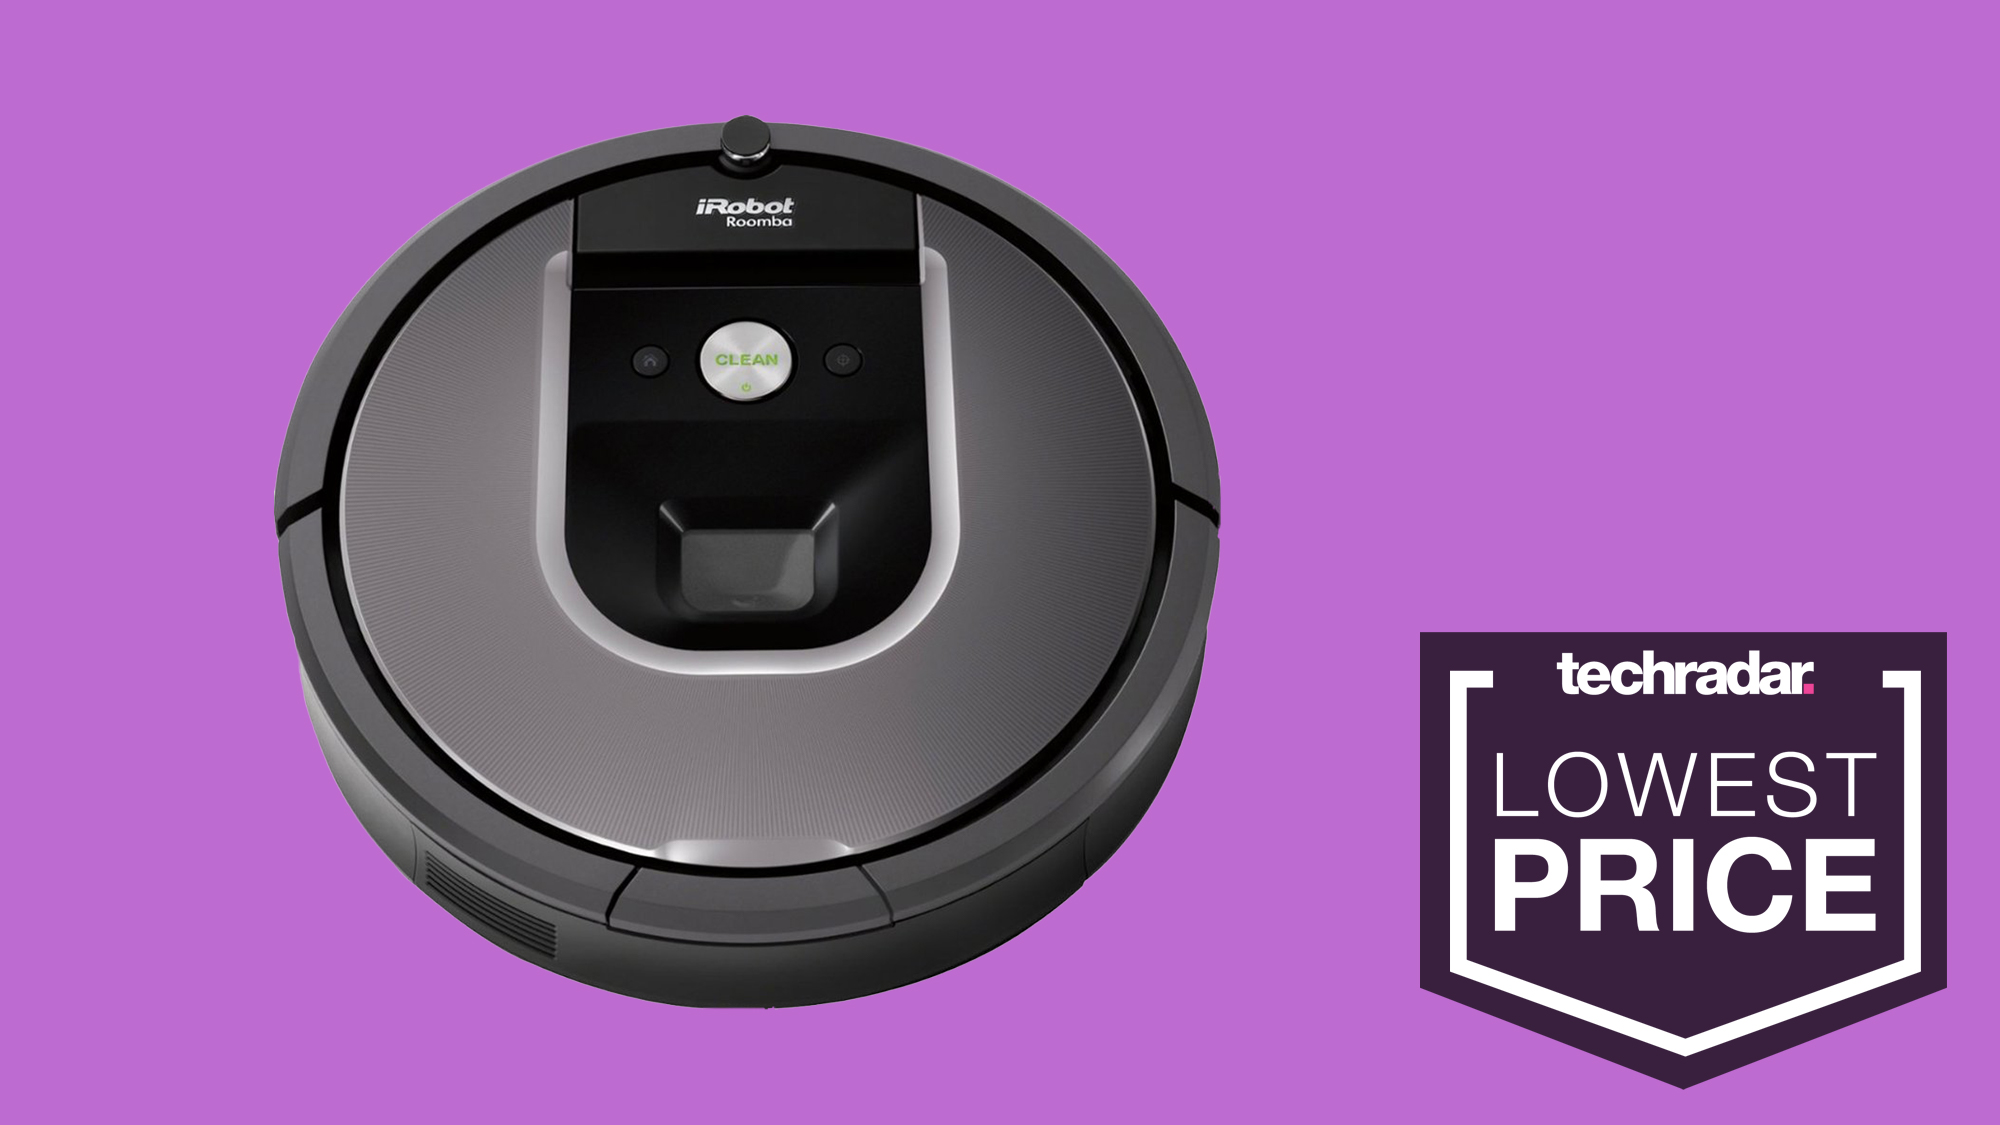 Want a robot vacuum? These Boxing Day deals are great, but they're going fast